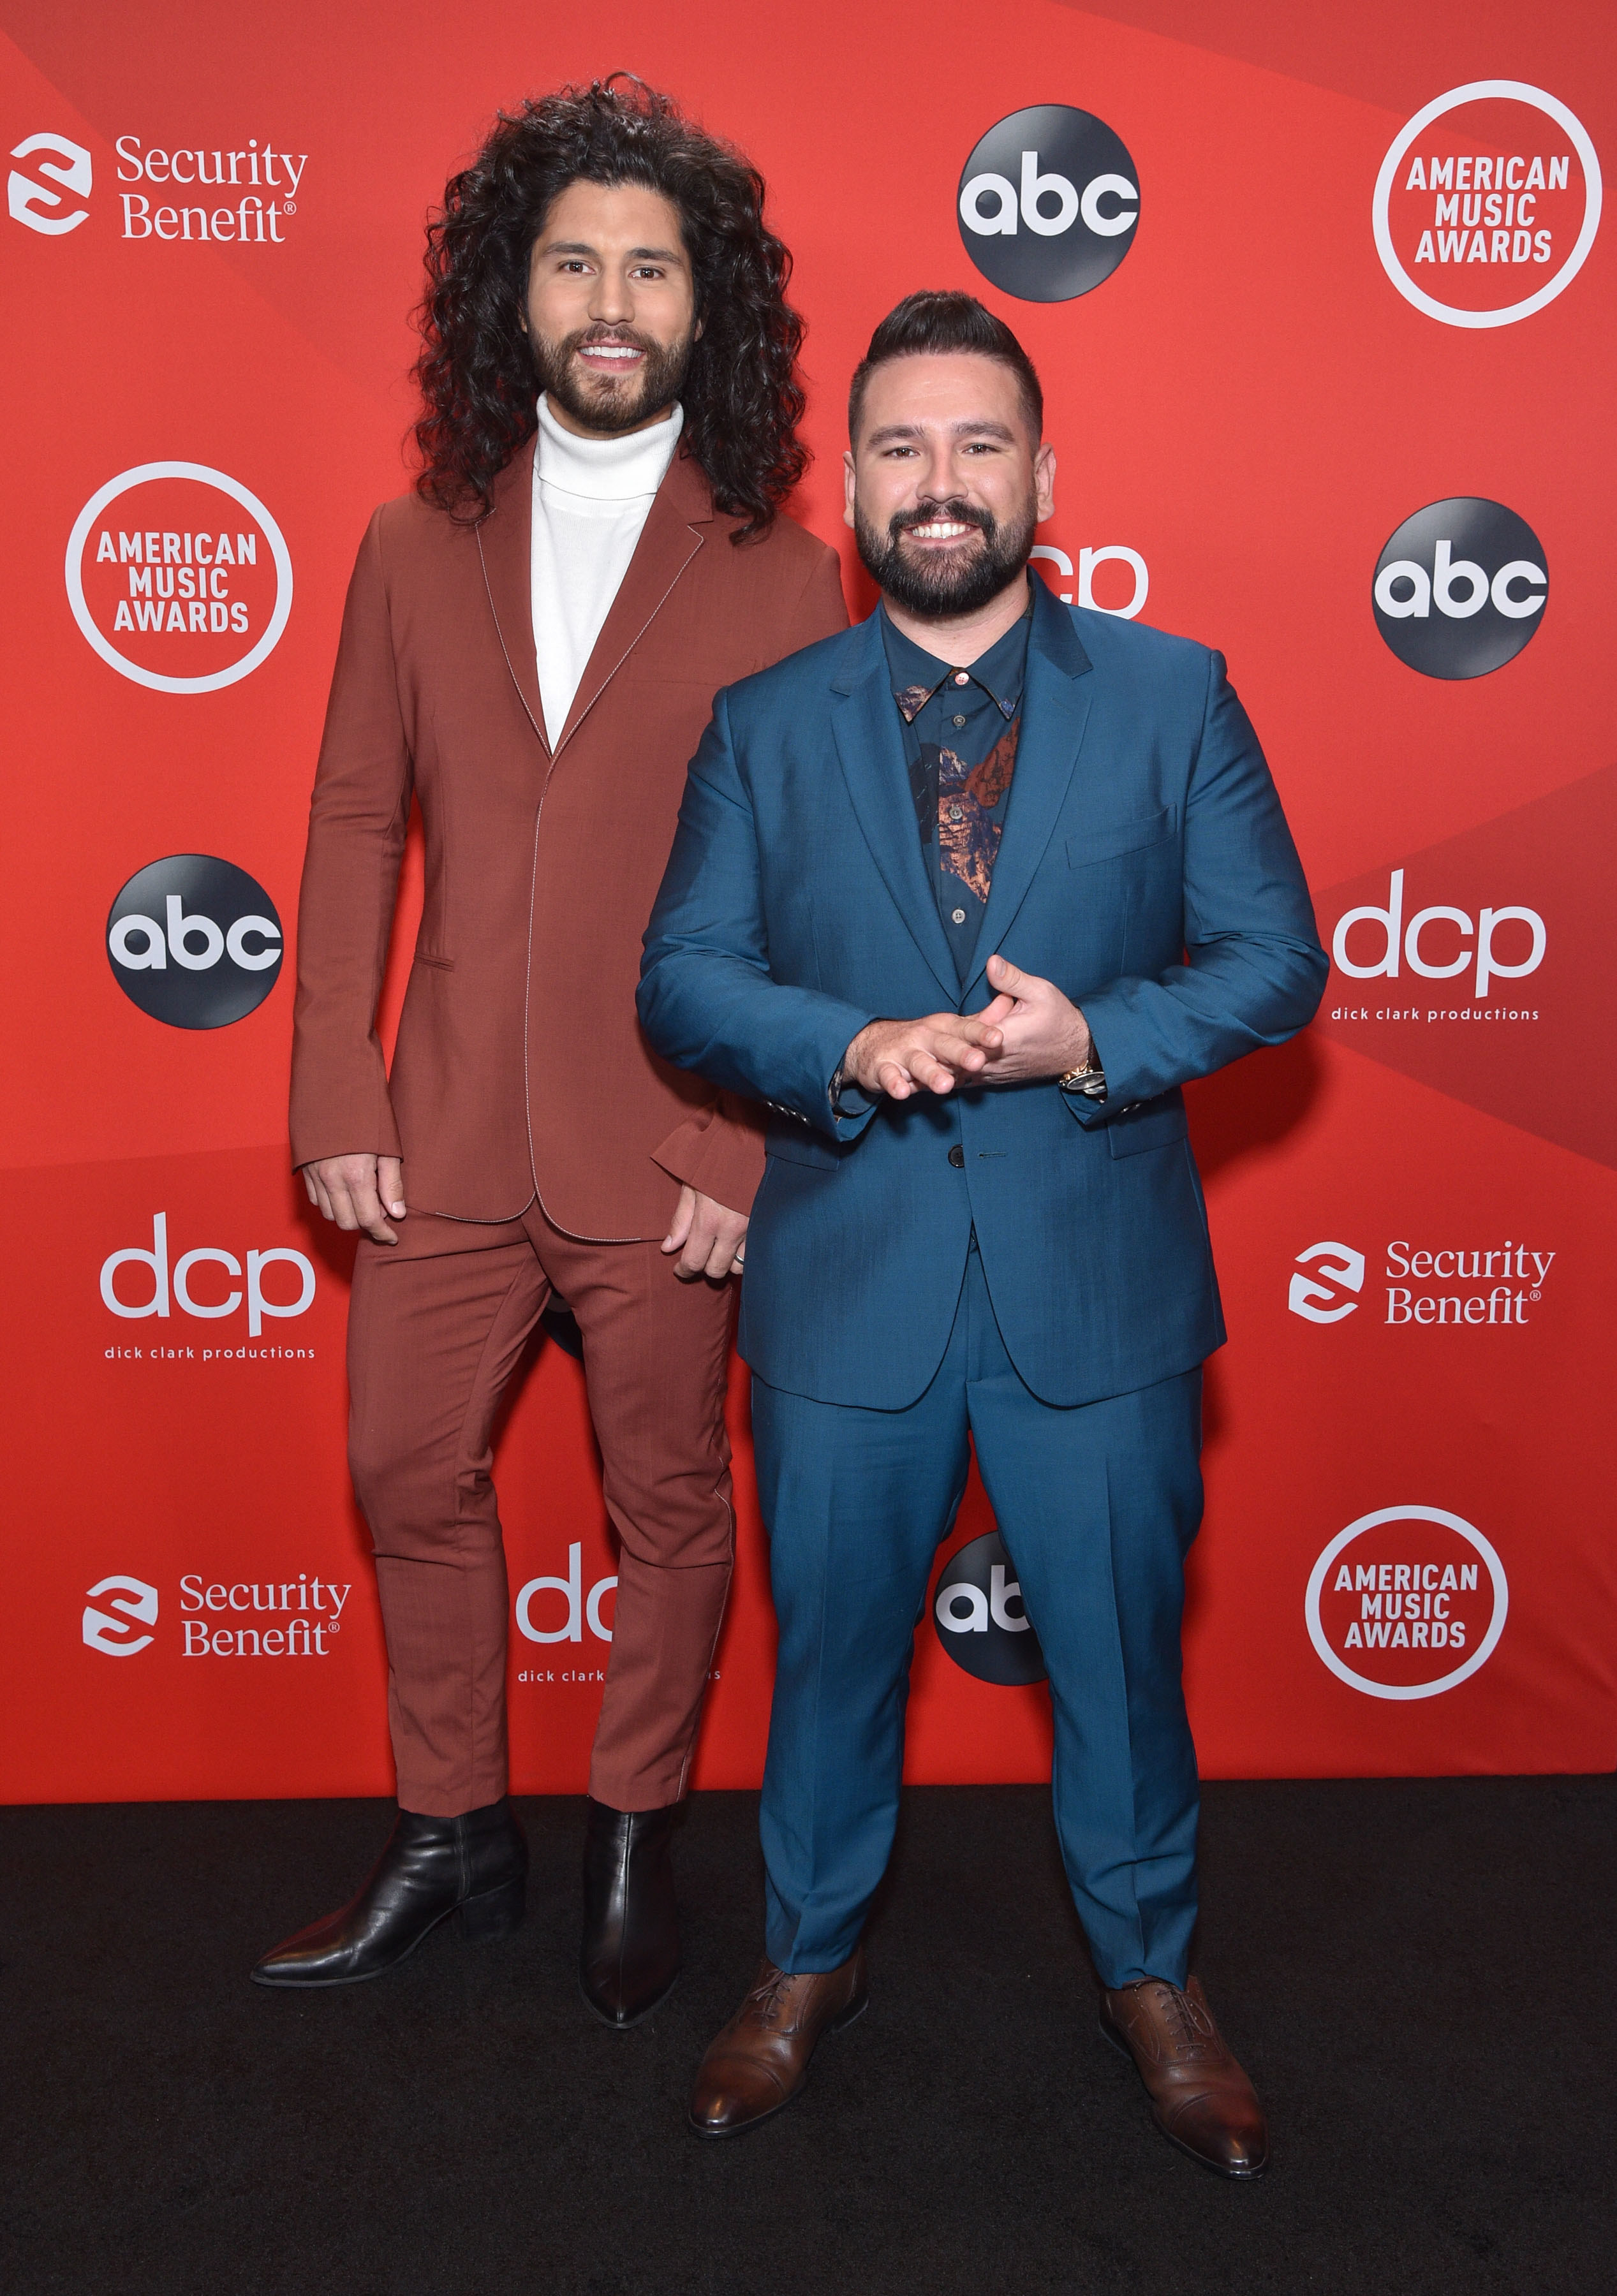 Dan Smyers and Shay Mooney of Dan + Shay wearing suits